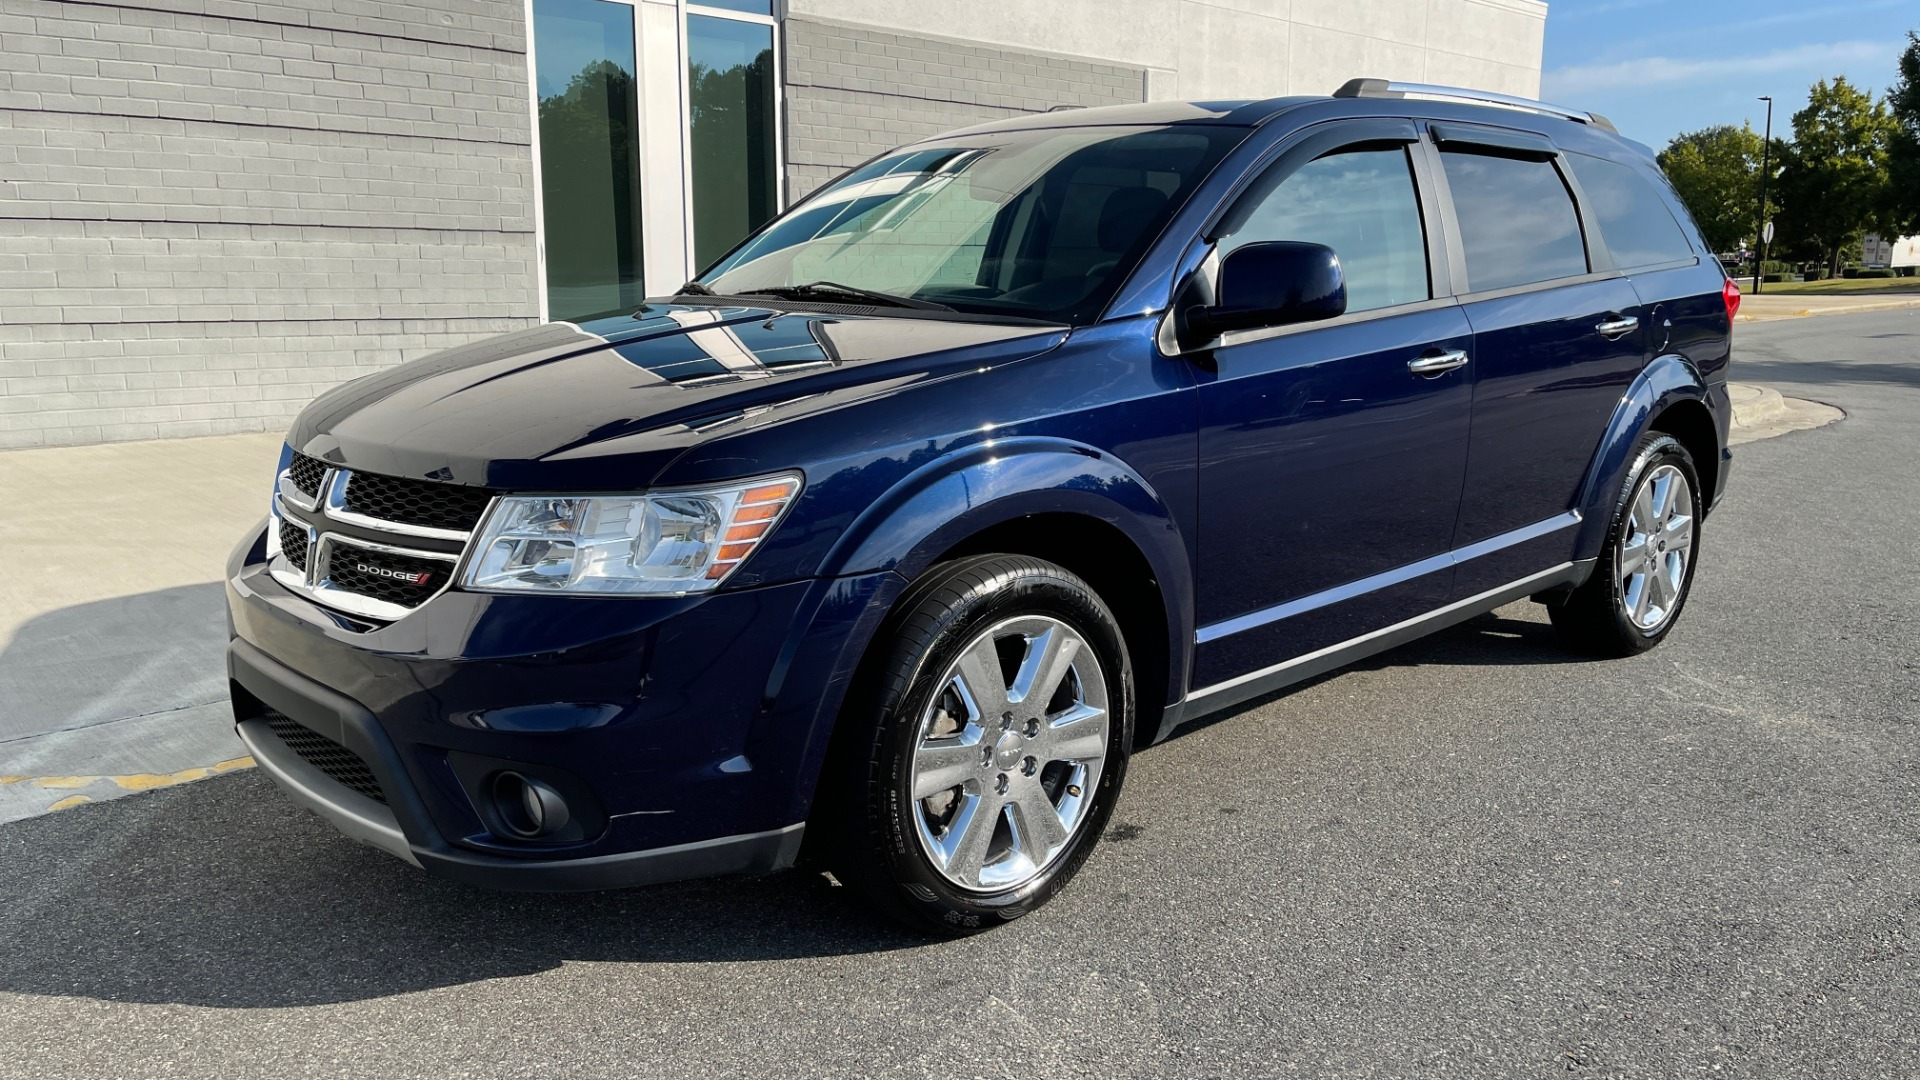 Used 2017 Dodge JOURNEY SXT PREMIUM / 2.4L / 4-SPD AUTO / KEYLESS-GO / 3-ROW / 19IN WHEELS for sale $15,995 at Formula Imports in Charlotte NC 28227 3